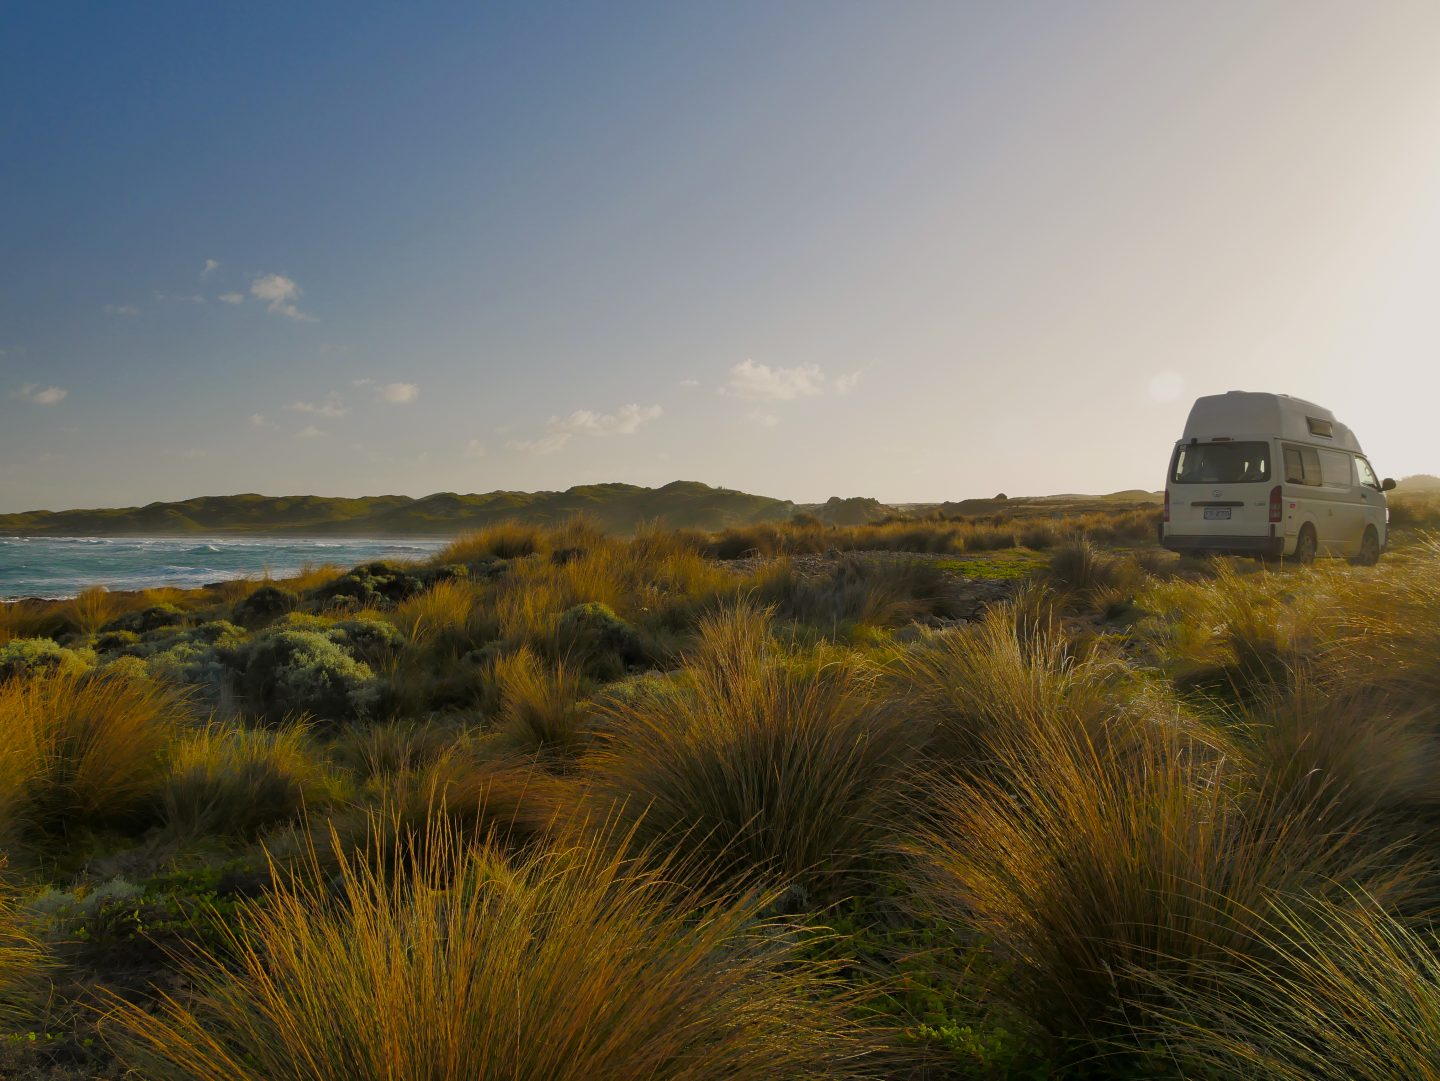 Wild camping on the wild and remote west coast of Tasmania